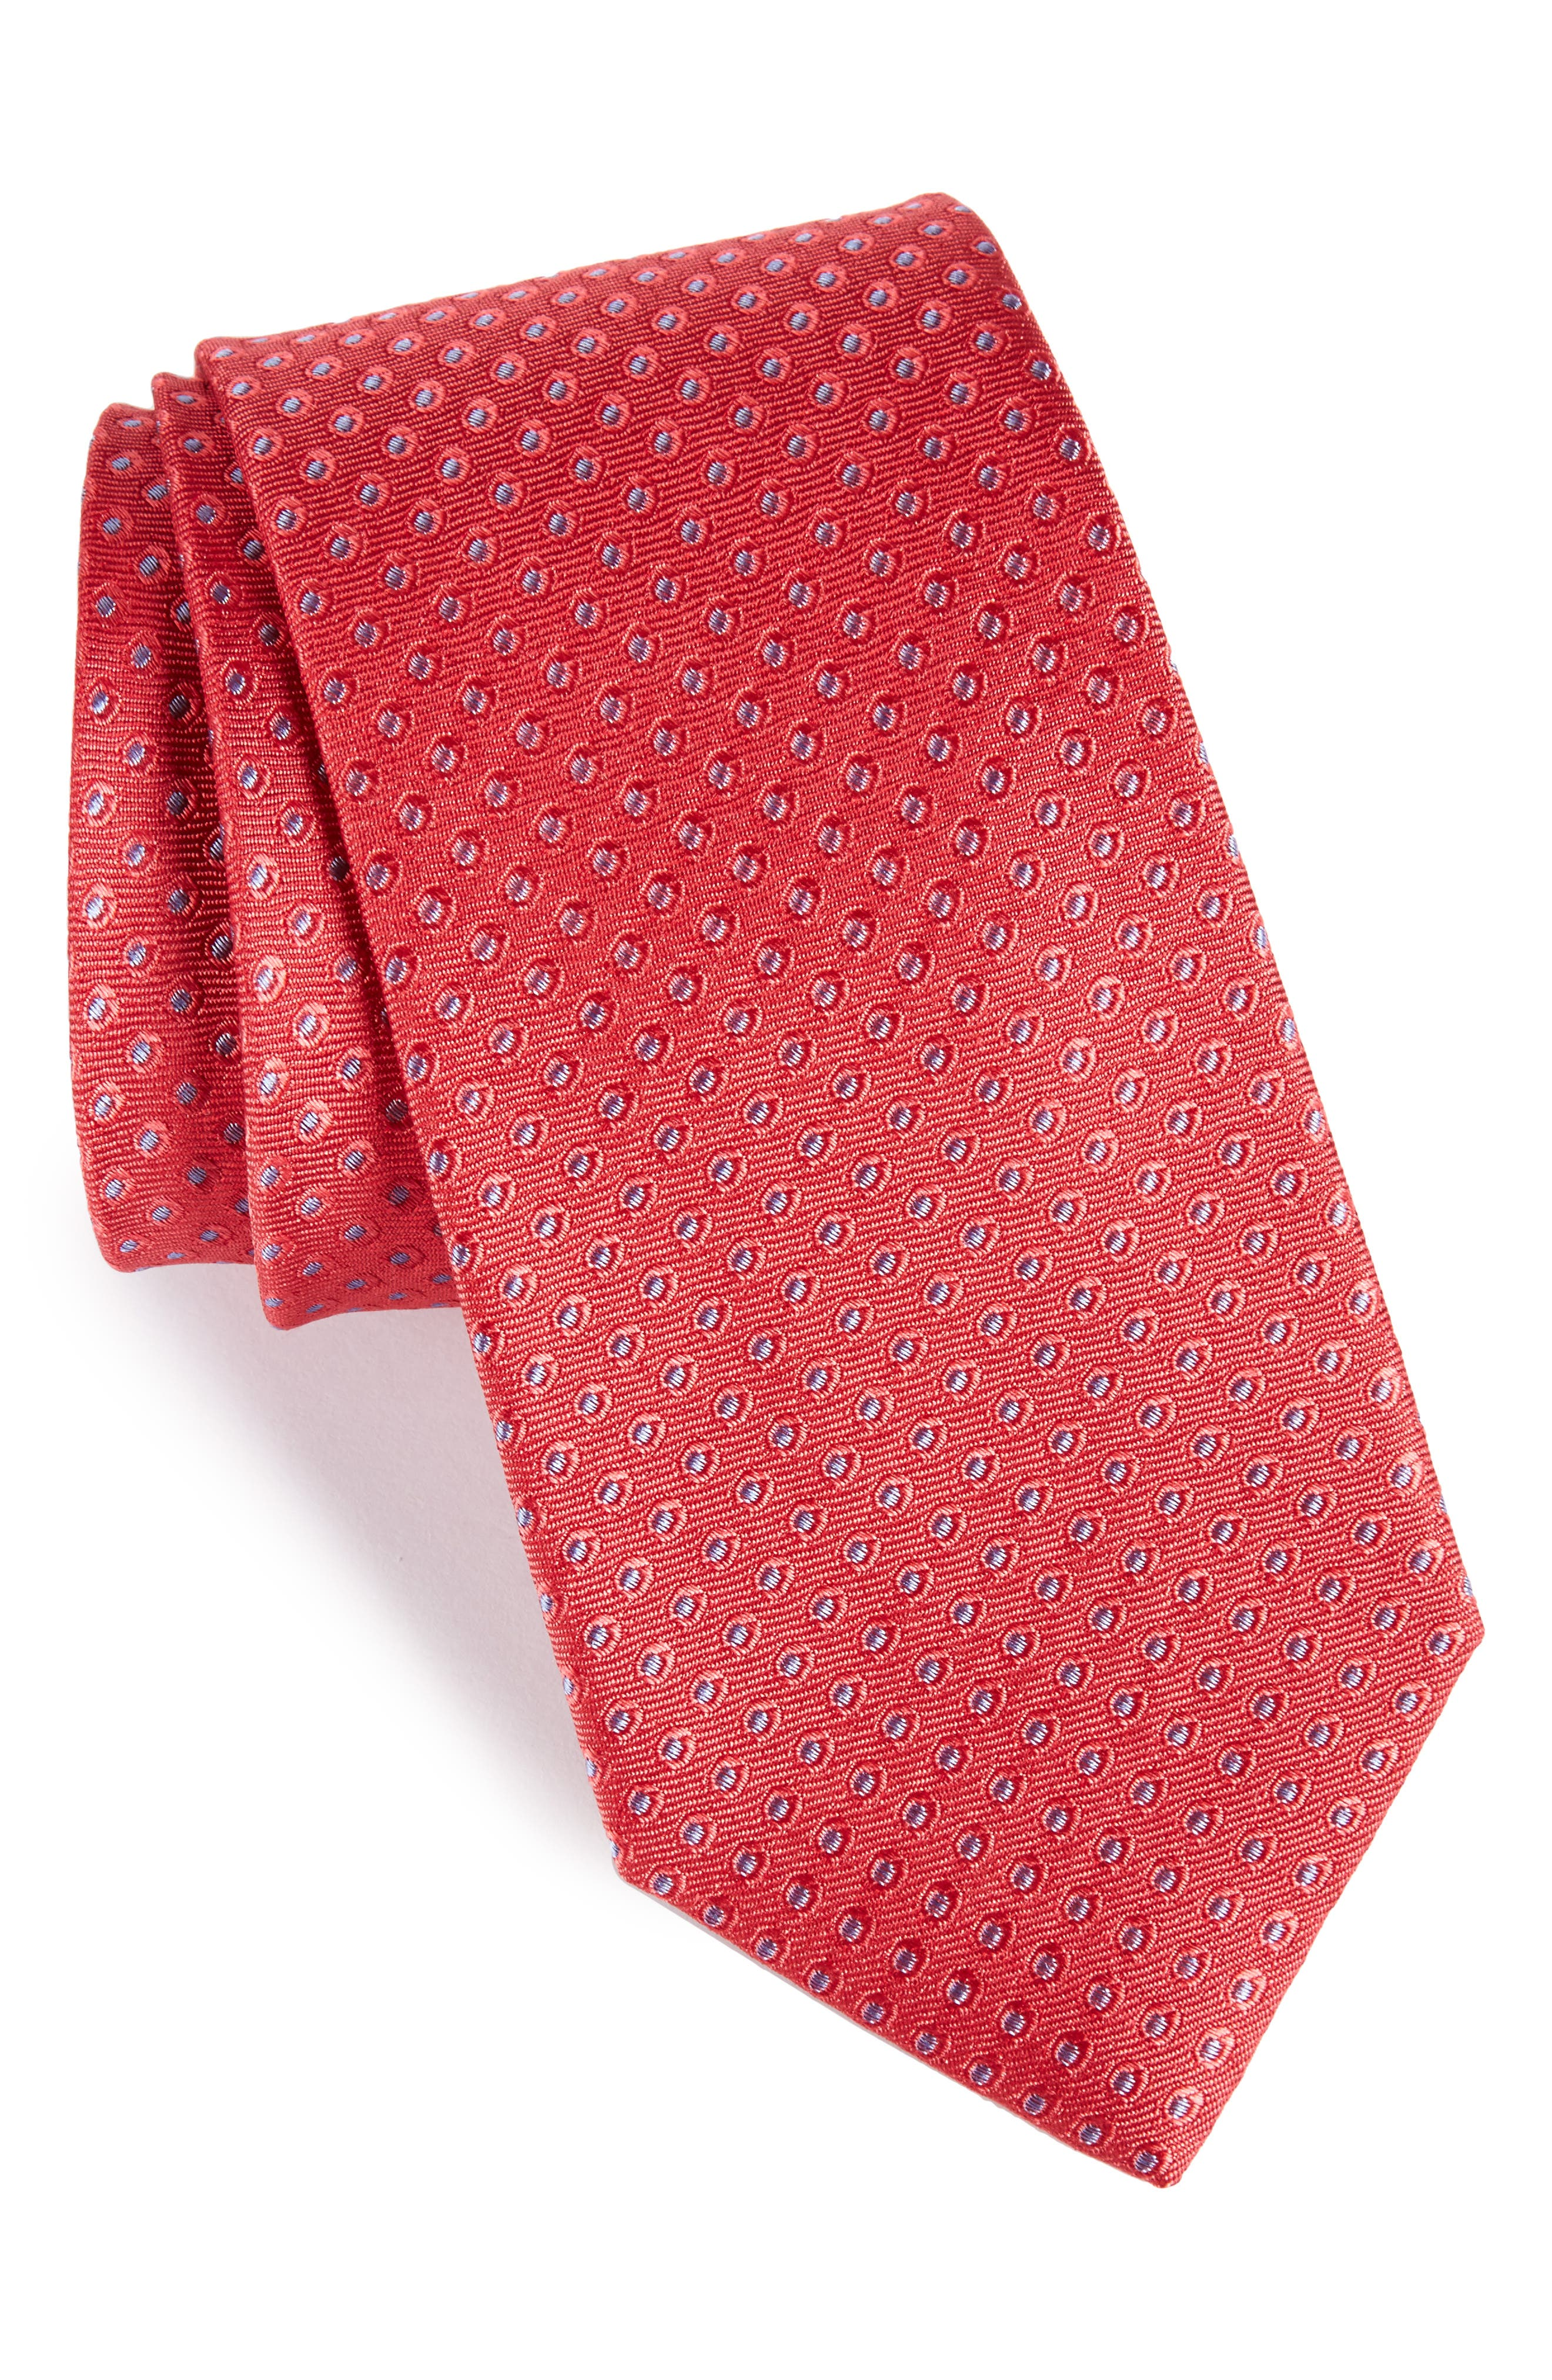 Oxford Dot Silk Tie,                             Main thumbnail 1, color,                             Red